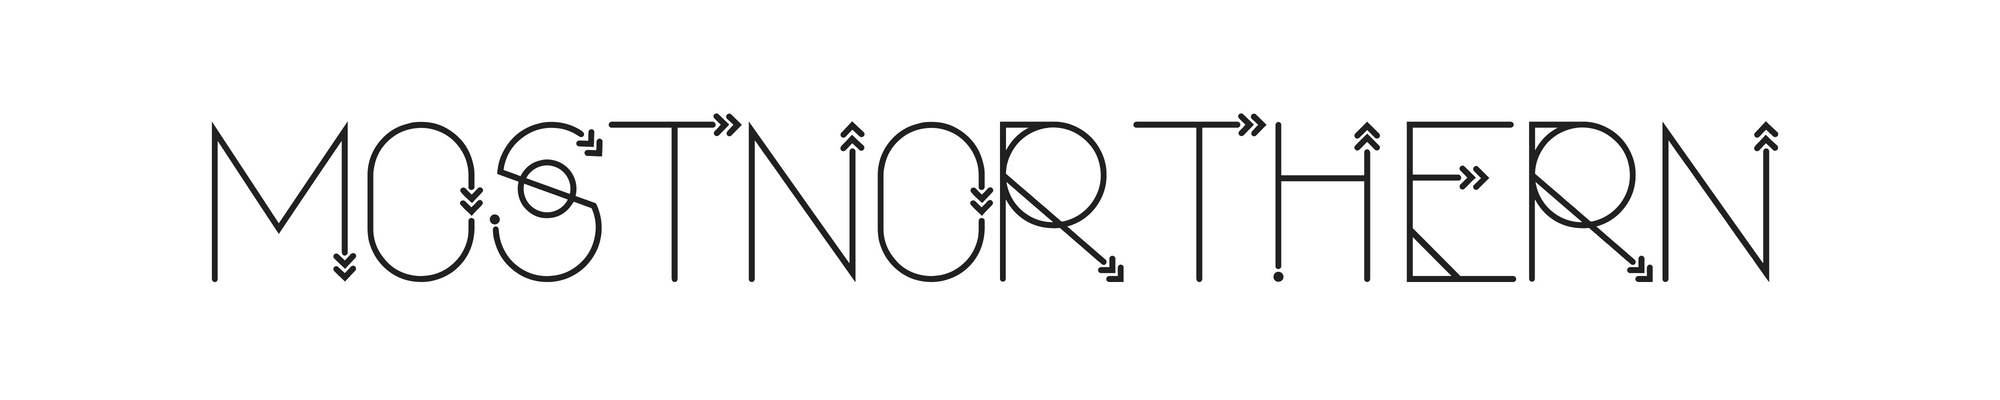 mostnorthern Cover